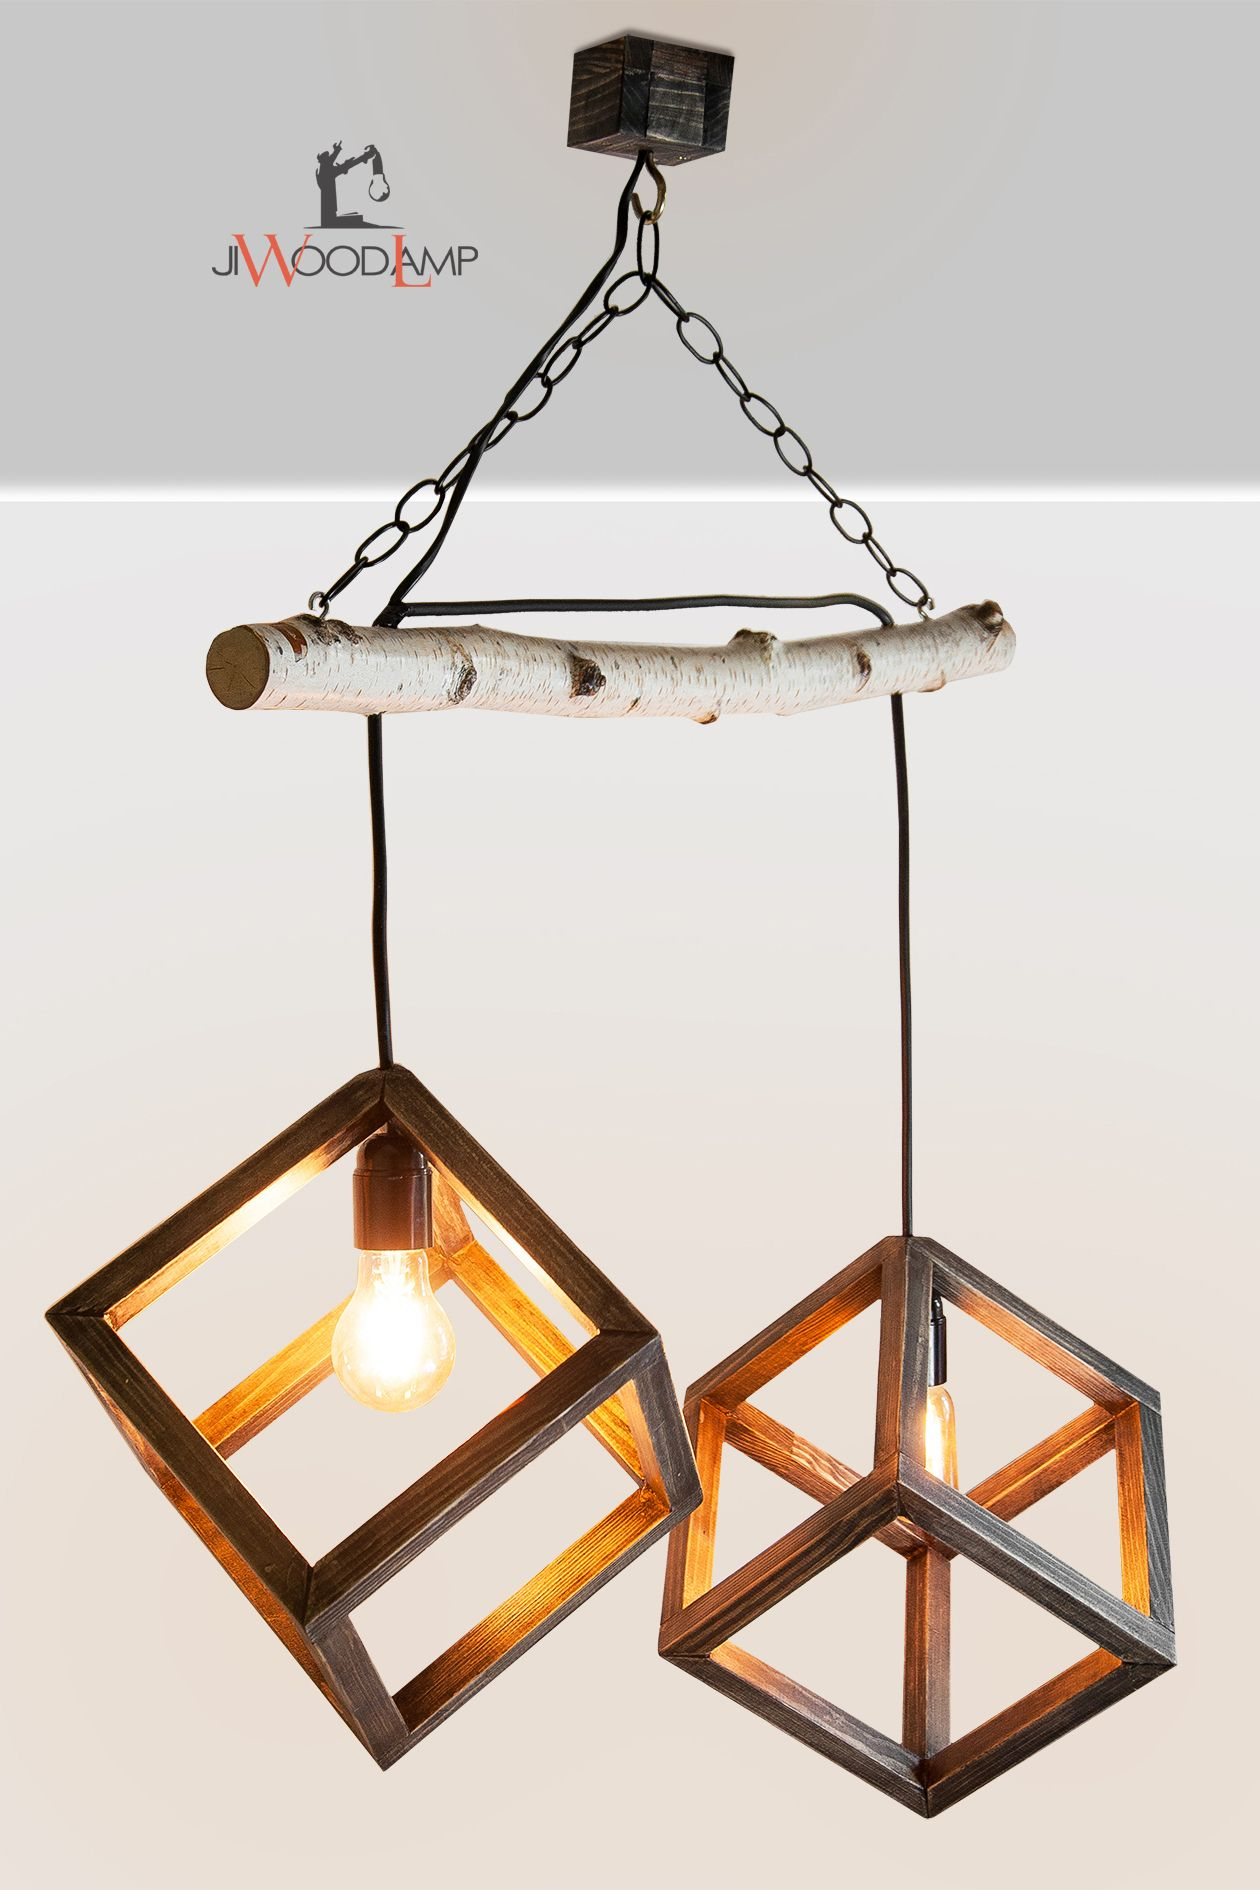 Wood Lamp Shades Fixture Wooden Hanging Lamp Pendant Birch Etsy Wood Lamp Shade Wood Lamps Wood And Metal Chandelier